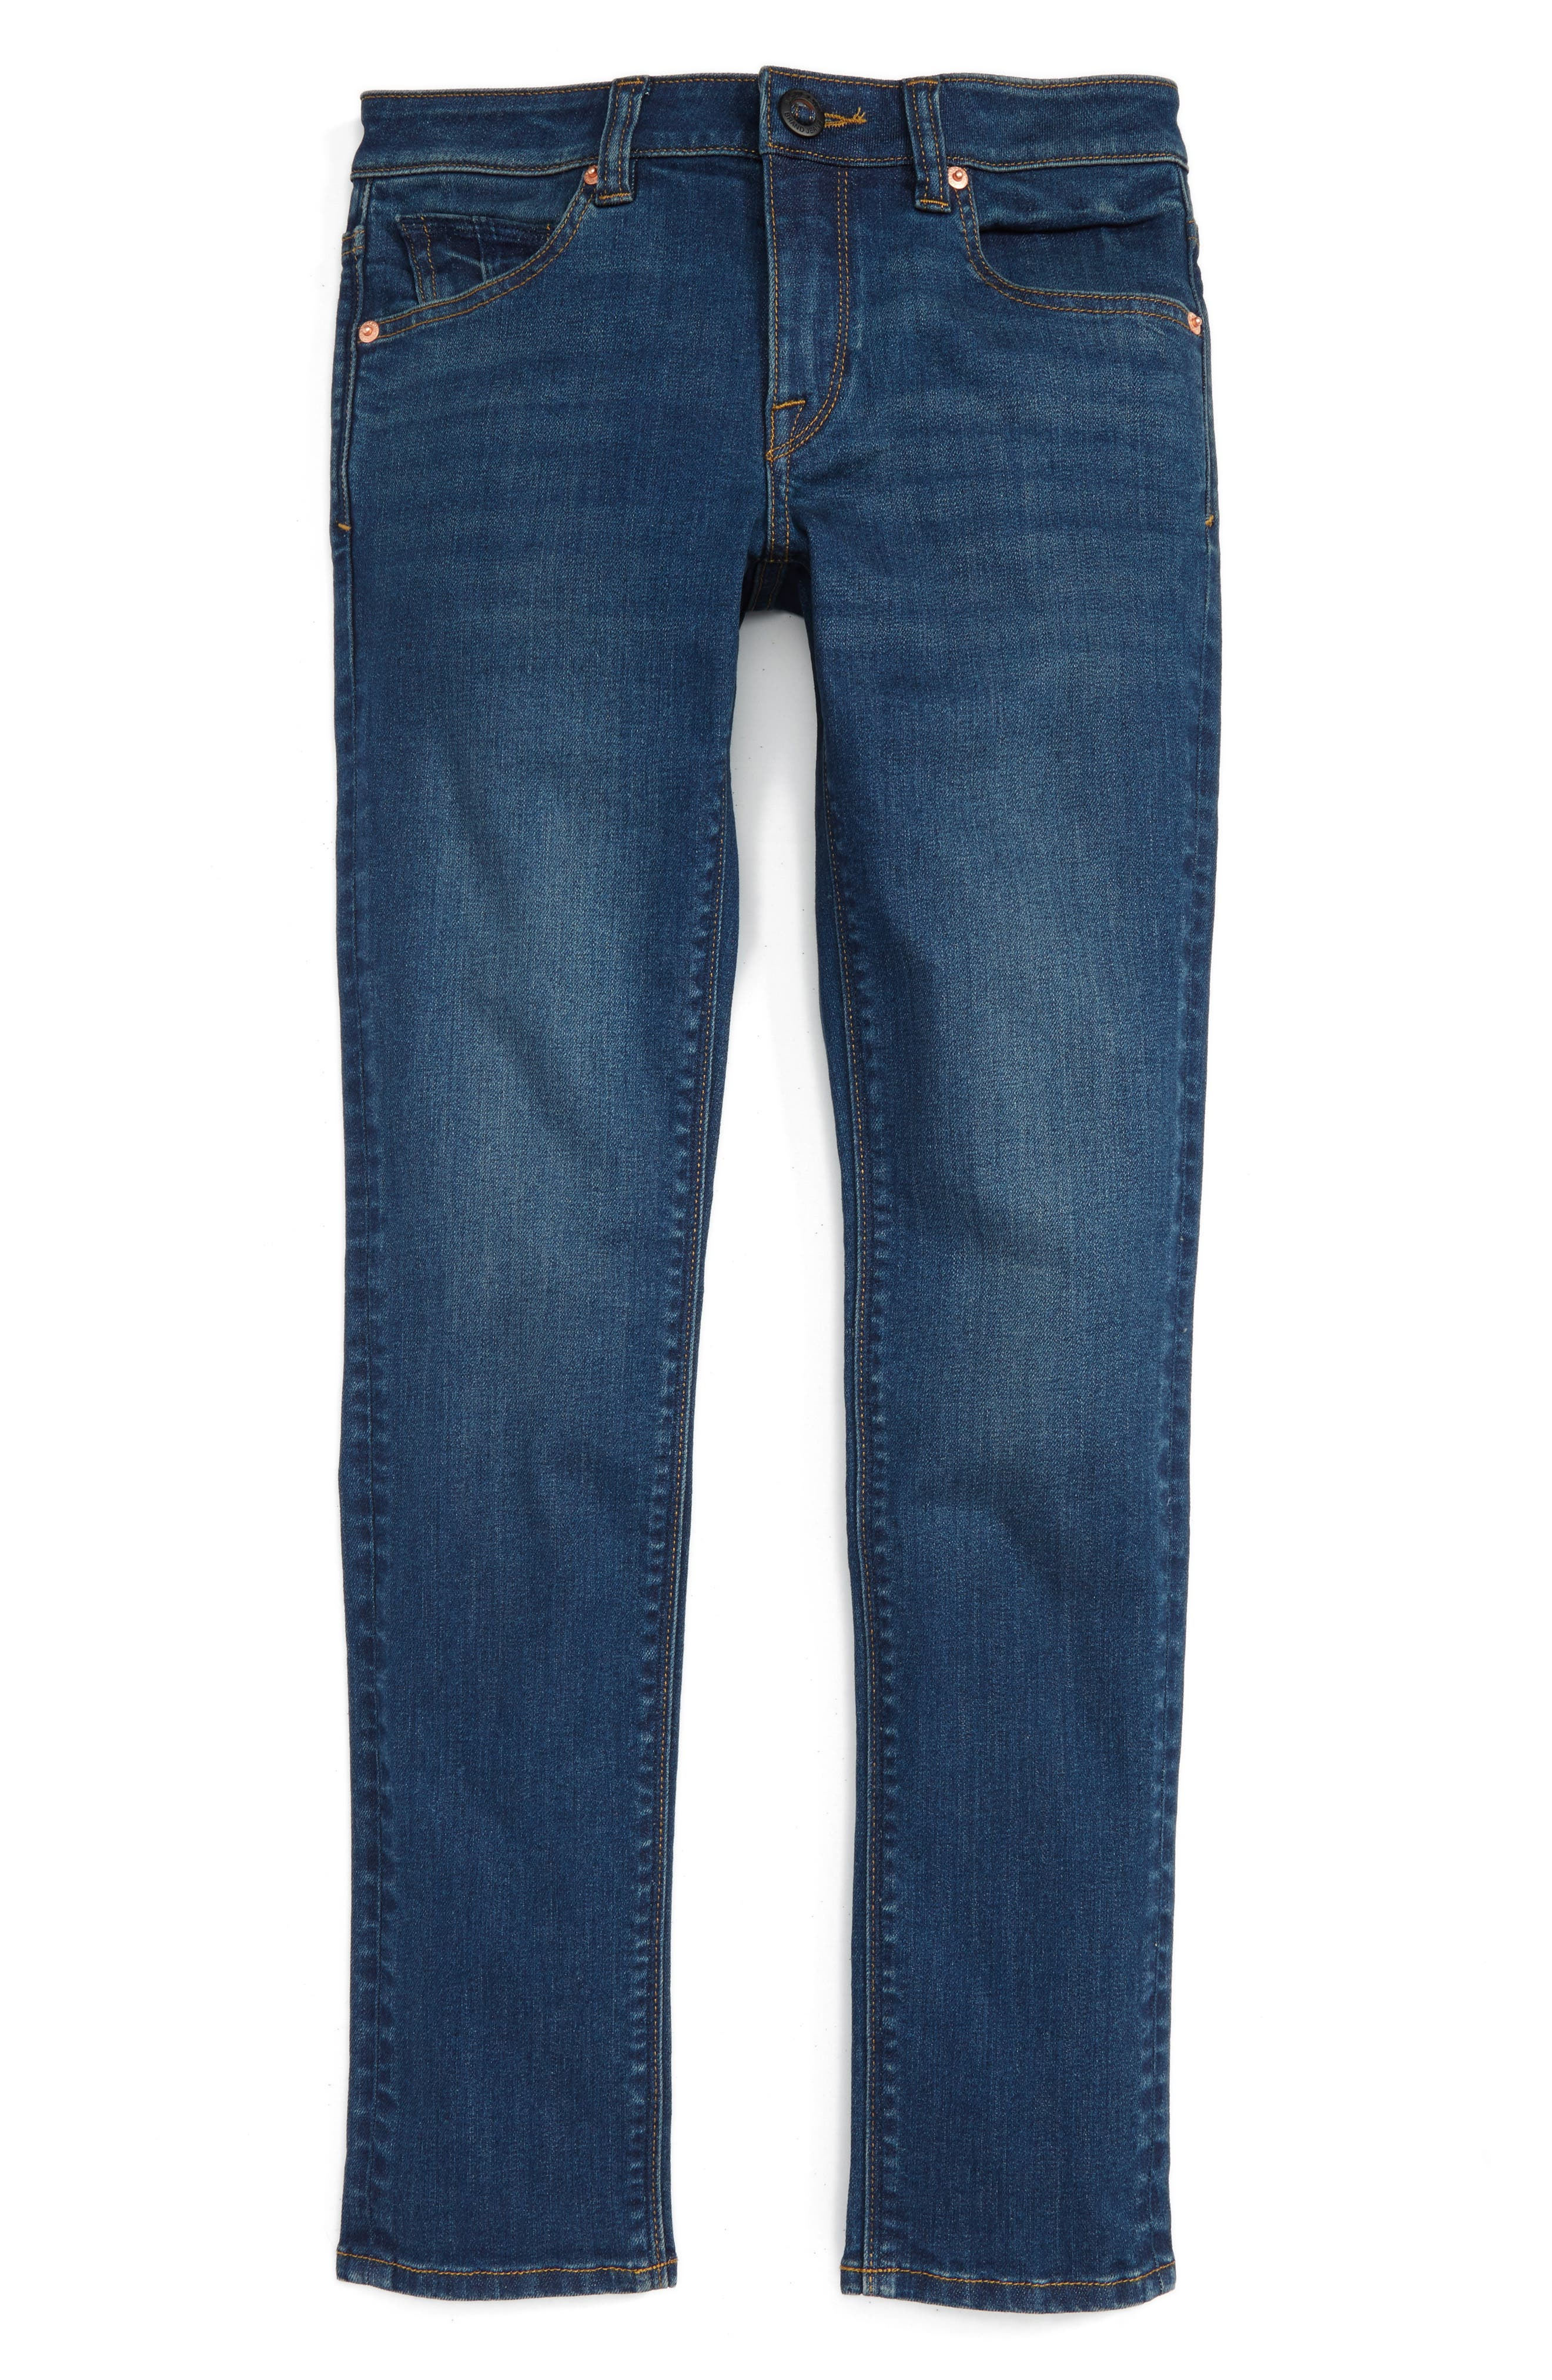 Volcom 'Solver' Straight Leg Denim Jeans (Toddler Boys, Little Boys & Big Boys)